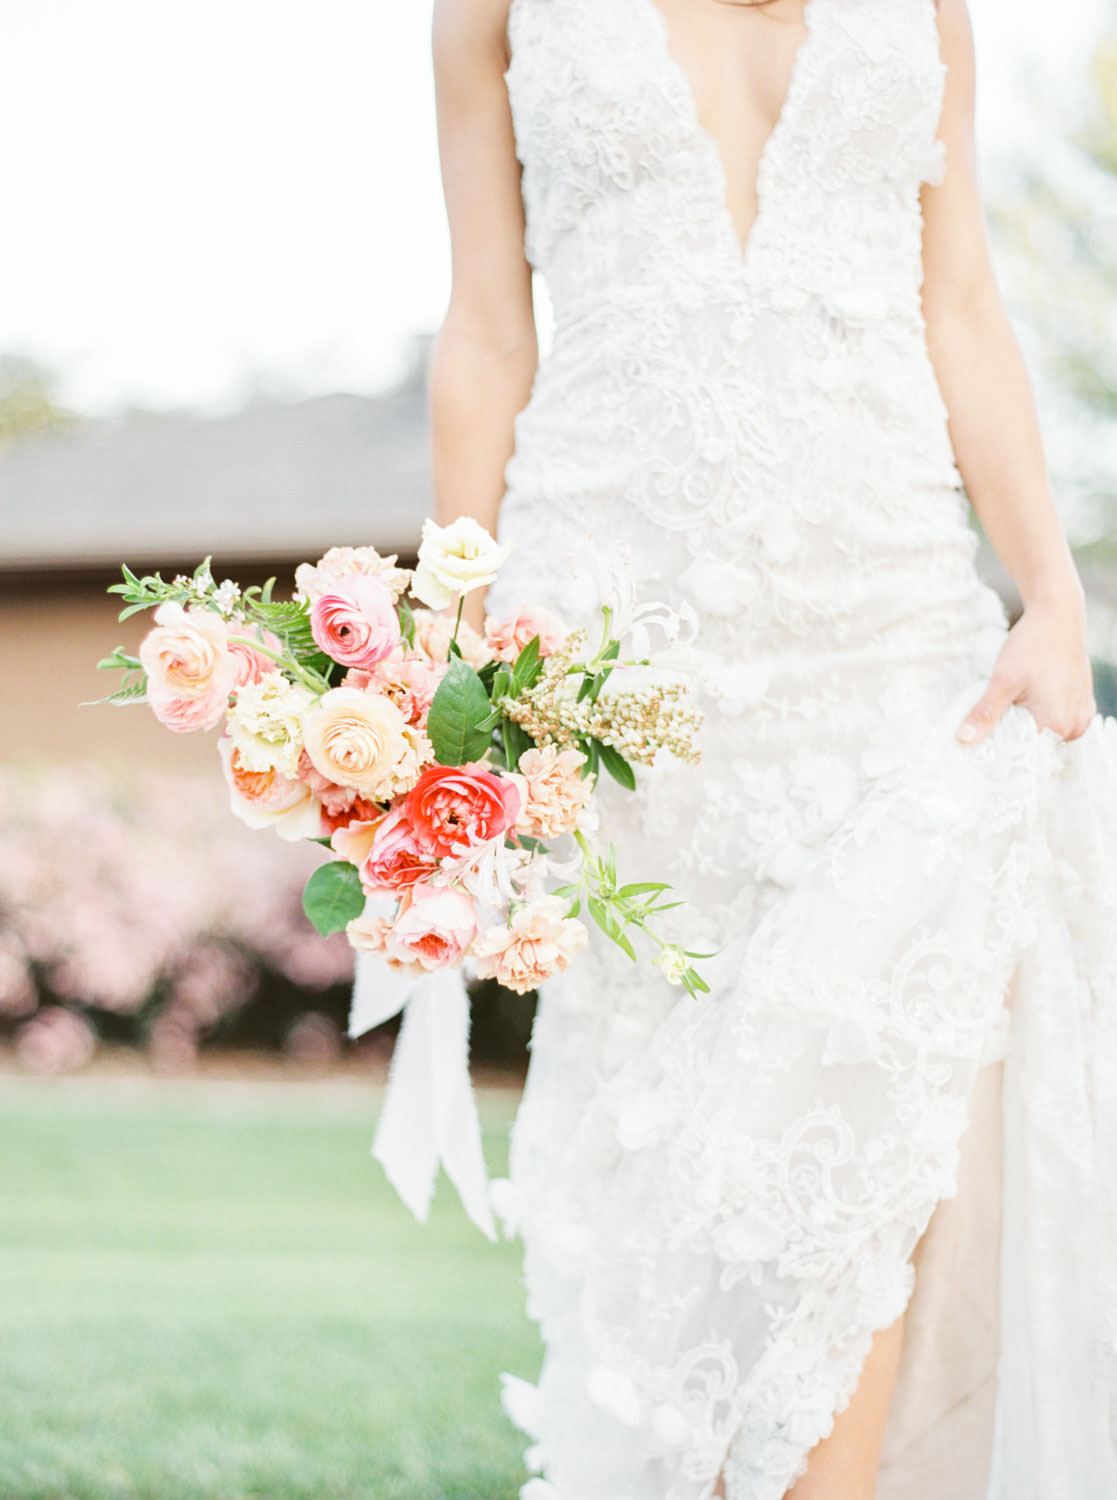 Bride in Marchesa Daffodil gown, Bridal bouquet with apricot peach blush pink and green, Film by Cavin Elizabeth Photography